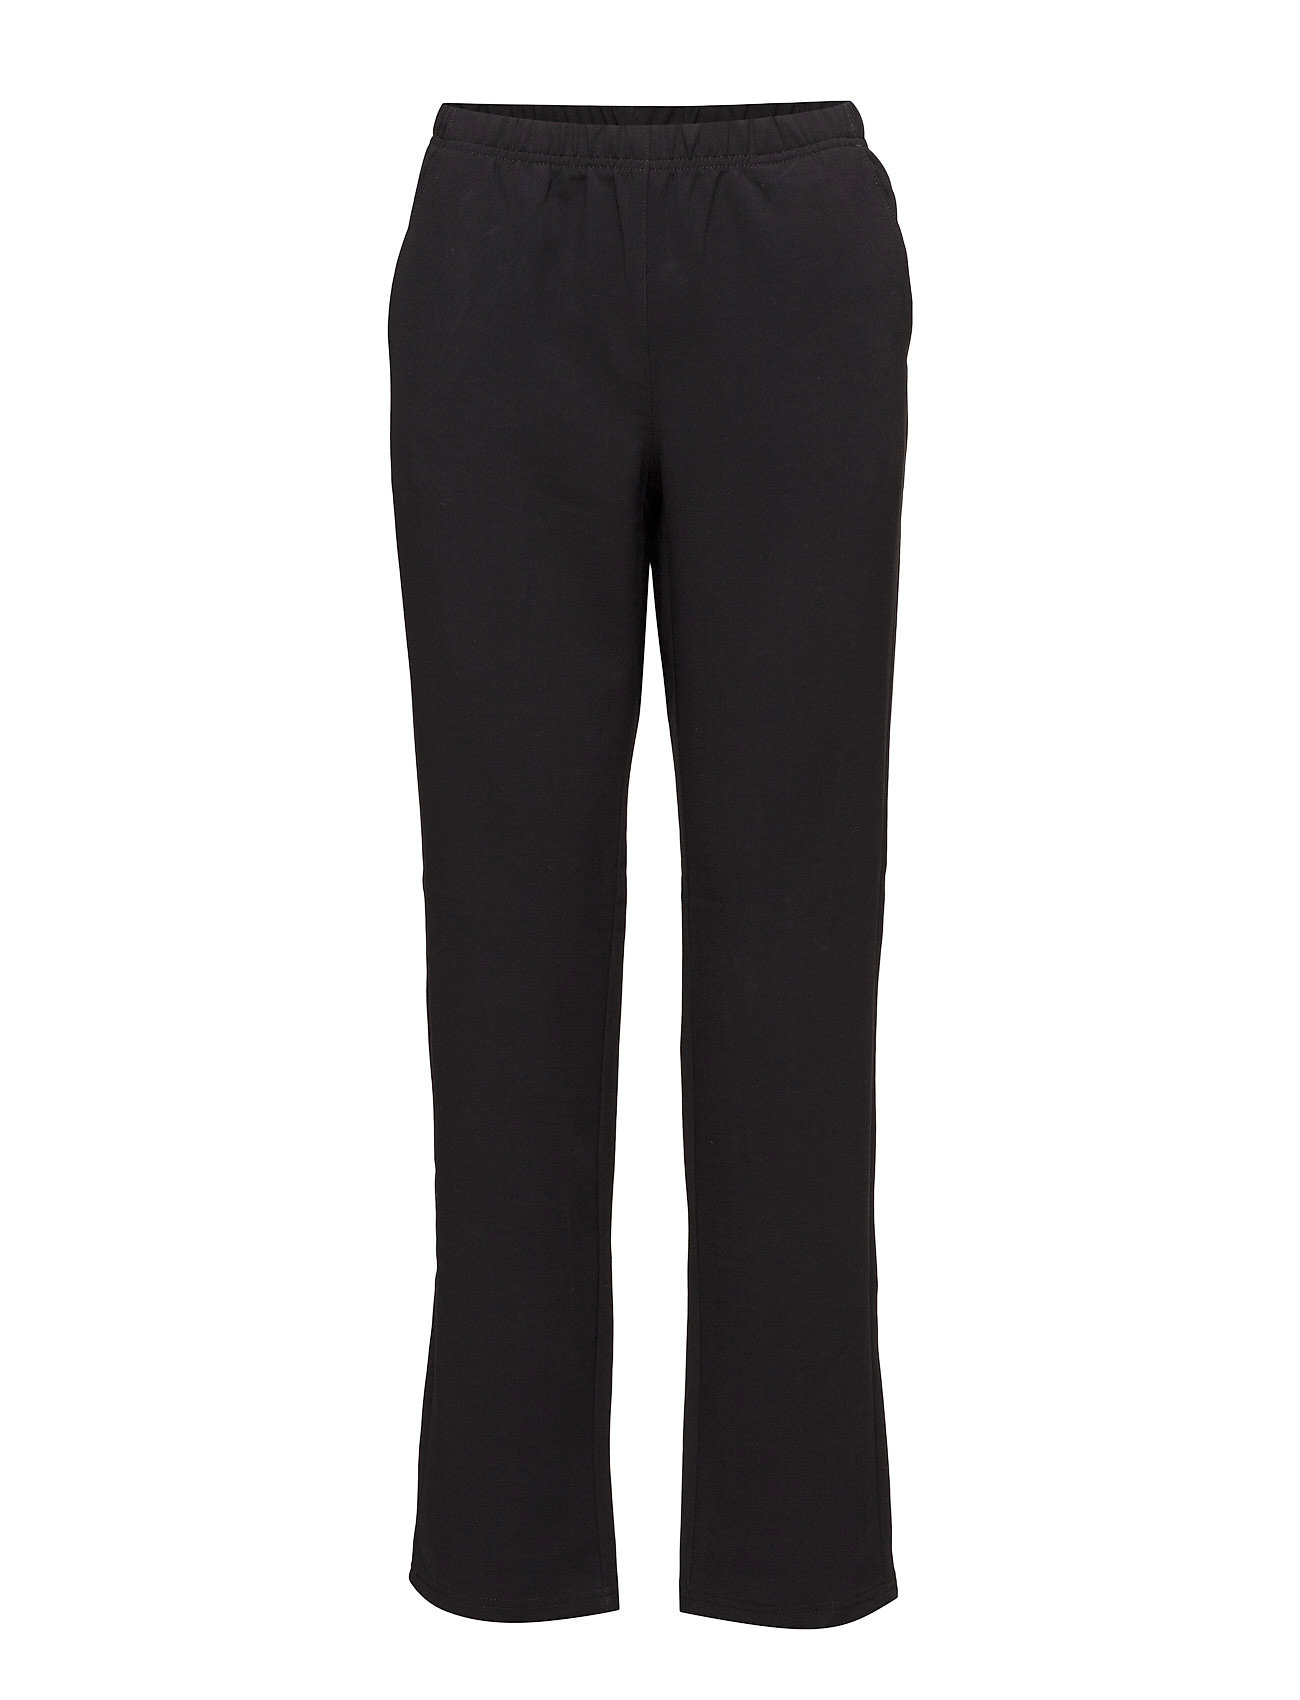 Signature Casual pants